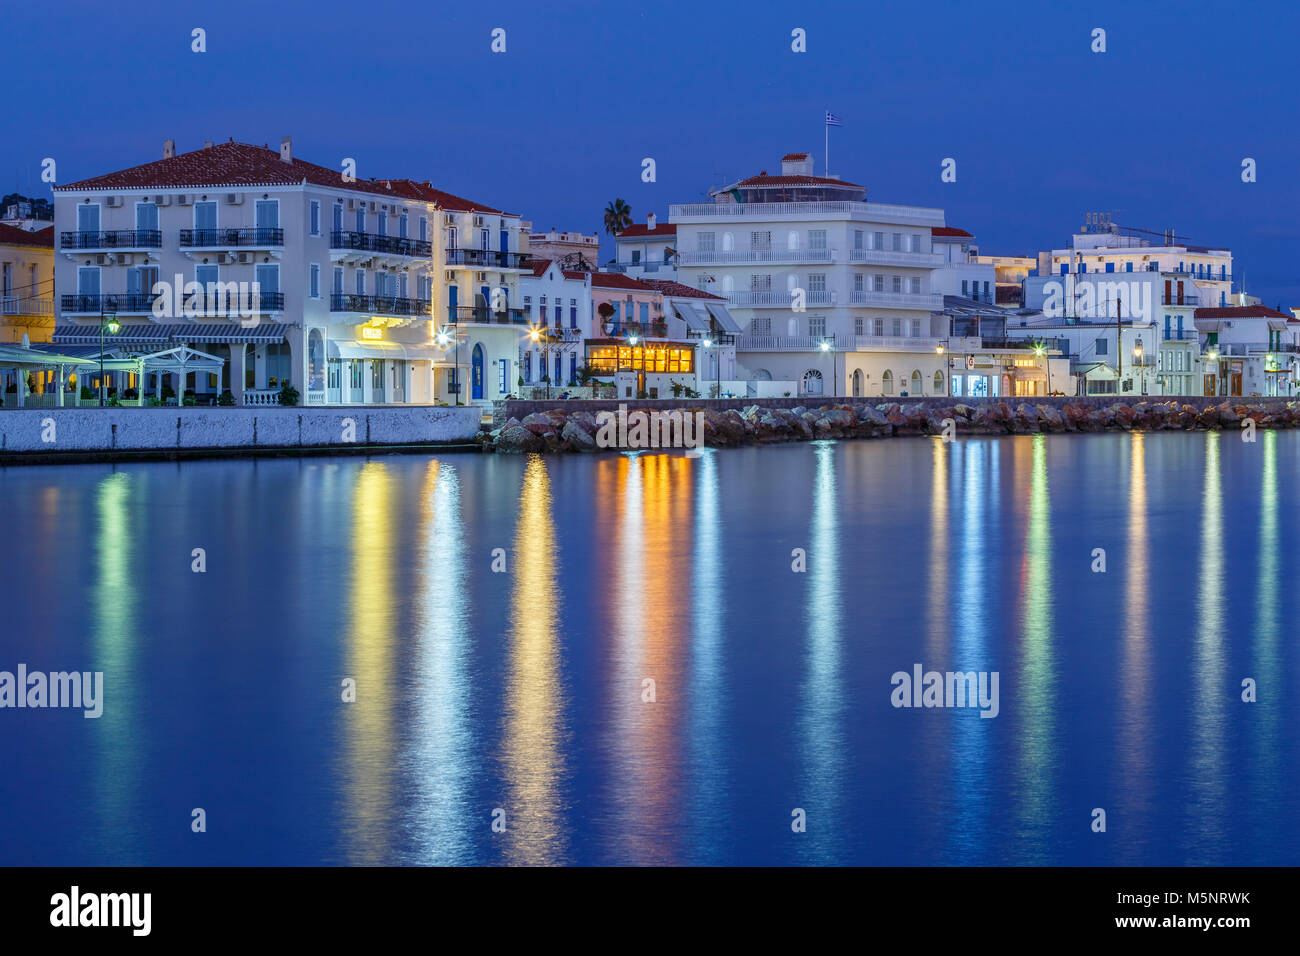 Morning view of Spetses seafront from the beach, Greece. - Stock Image